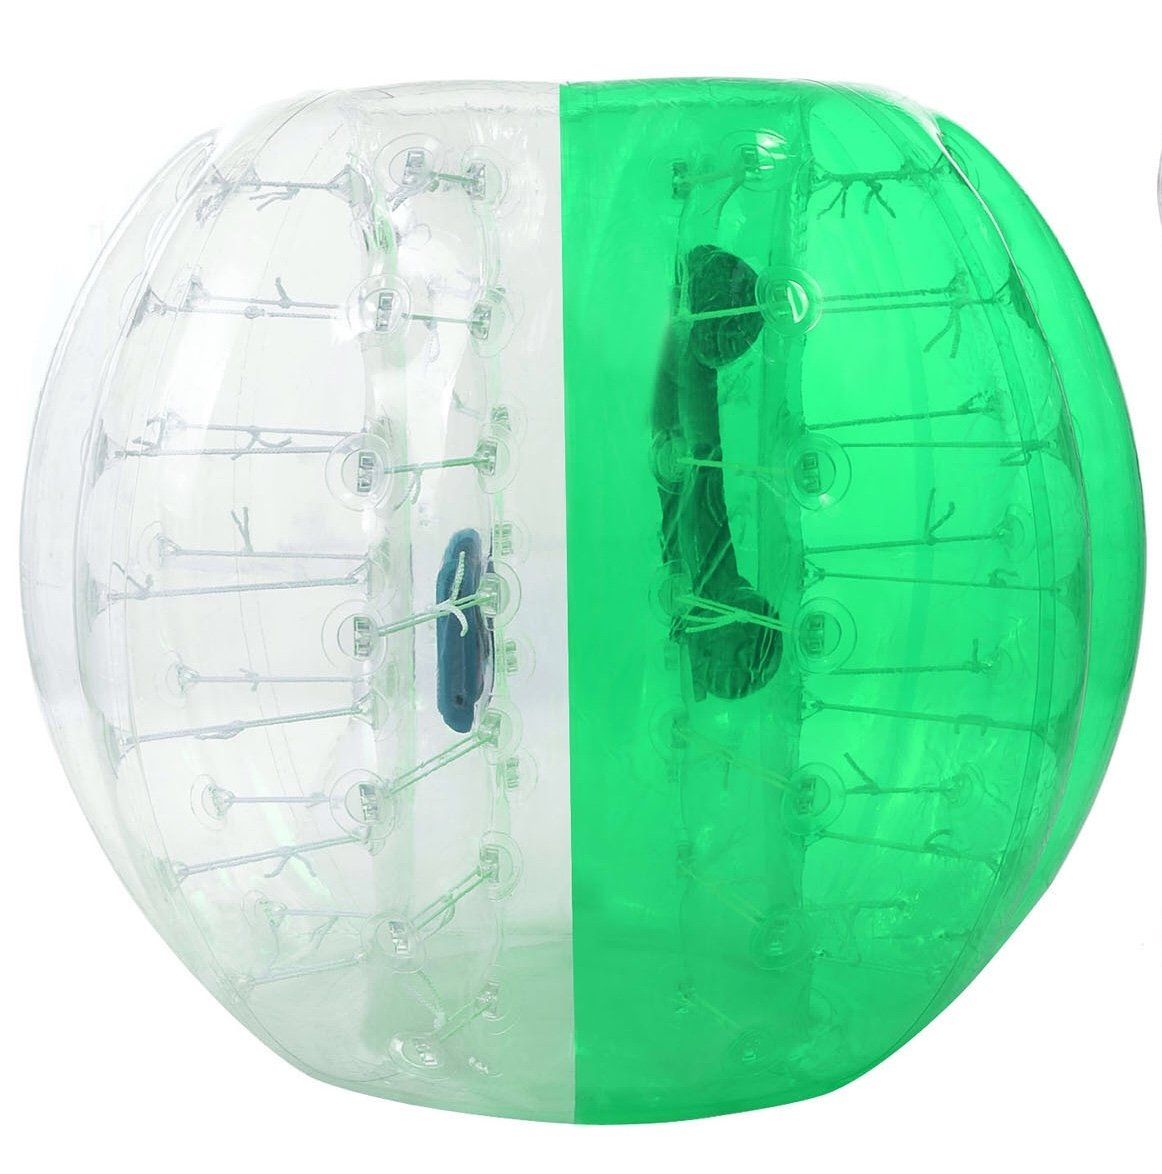 Oanon Inflatable Bumper Ball 1.2M 4FT/1.5M 5FT Diameter Bubble Soccer Ball Blow Up Toy, Inflatable Bumper Bubble Balls for Childs,Teens,Adults (White/Green 1.5M)